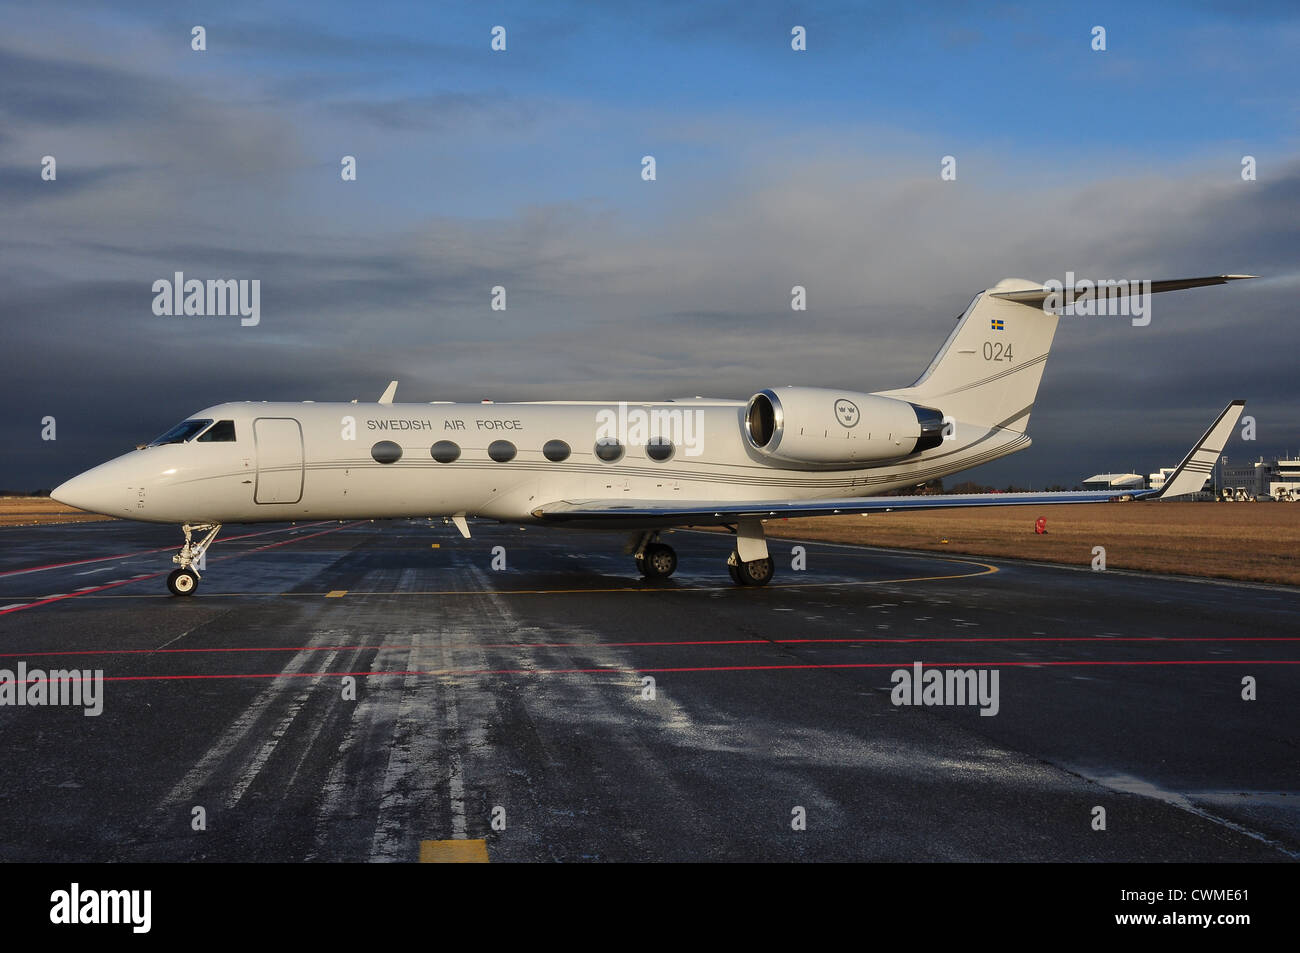 Sweden Air Force Gulfstream G-IV - Stock Image